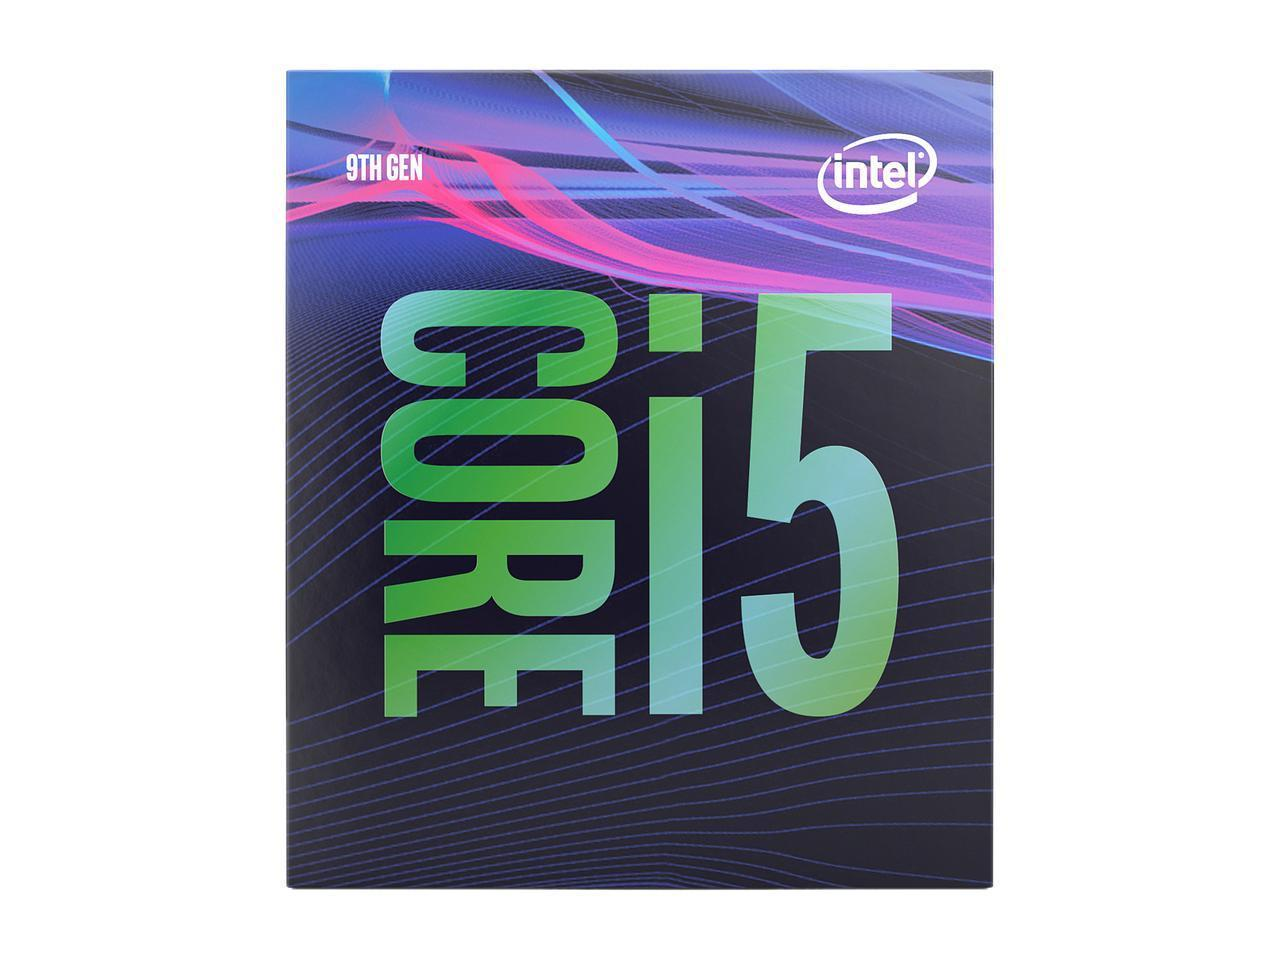 Процесор Intel Coffee Lake Core i5-9500 3.0GHz (up to 4.40GHz ), 9MB, 65W LGA1151 (300 Series)